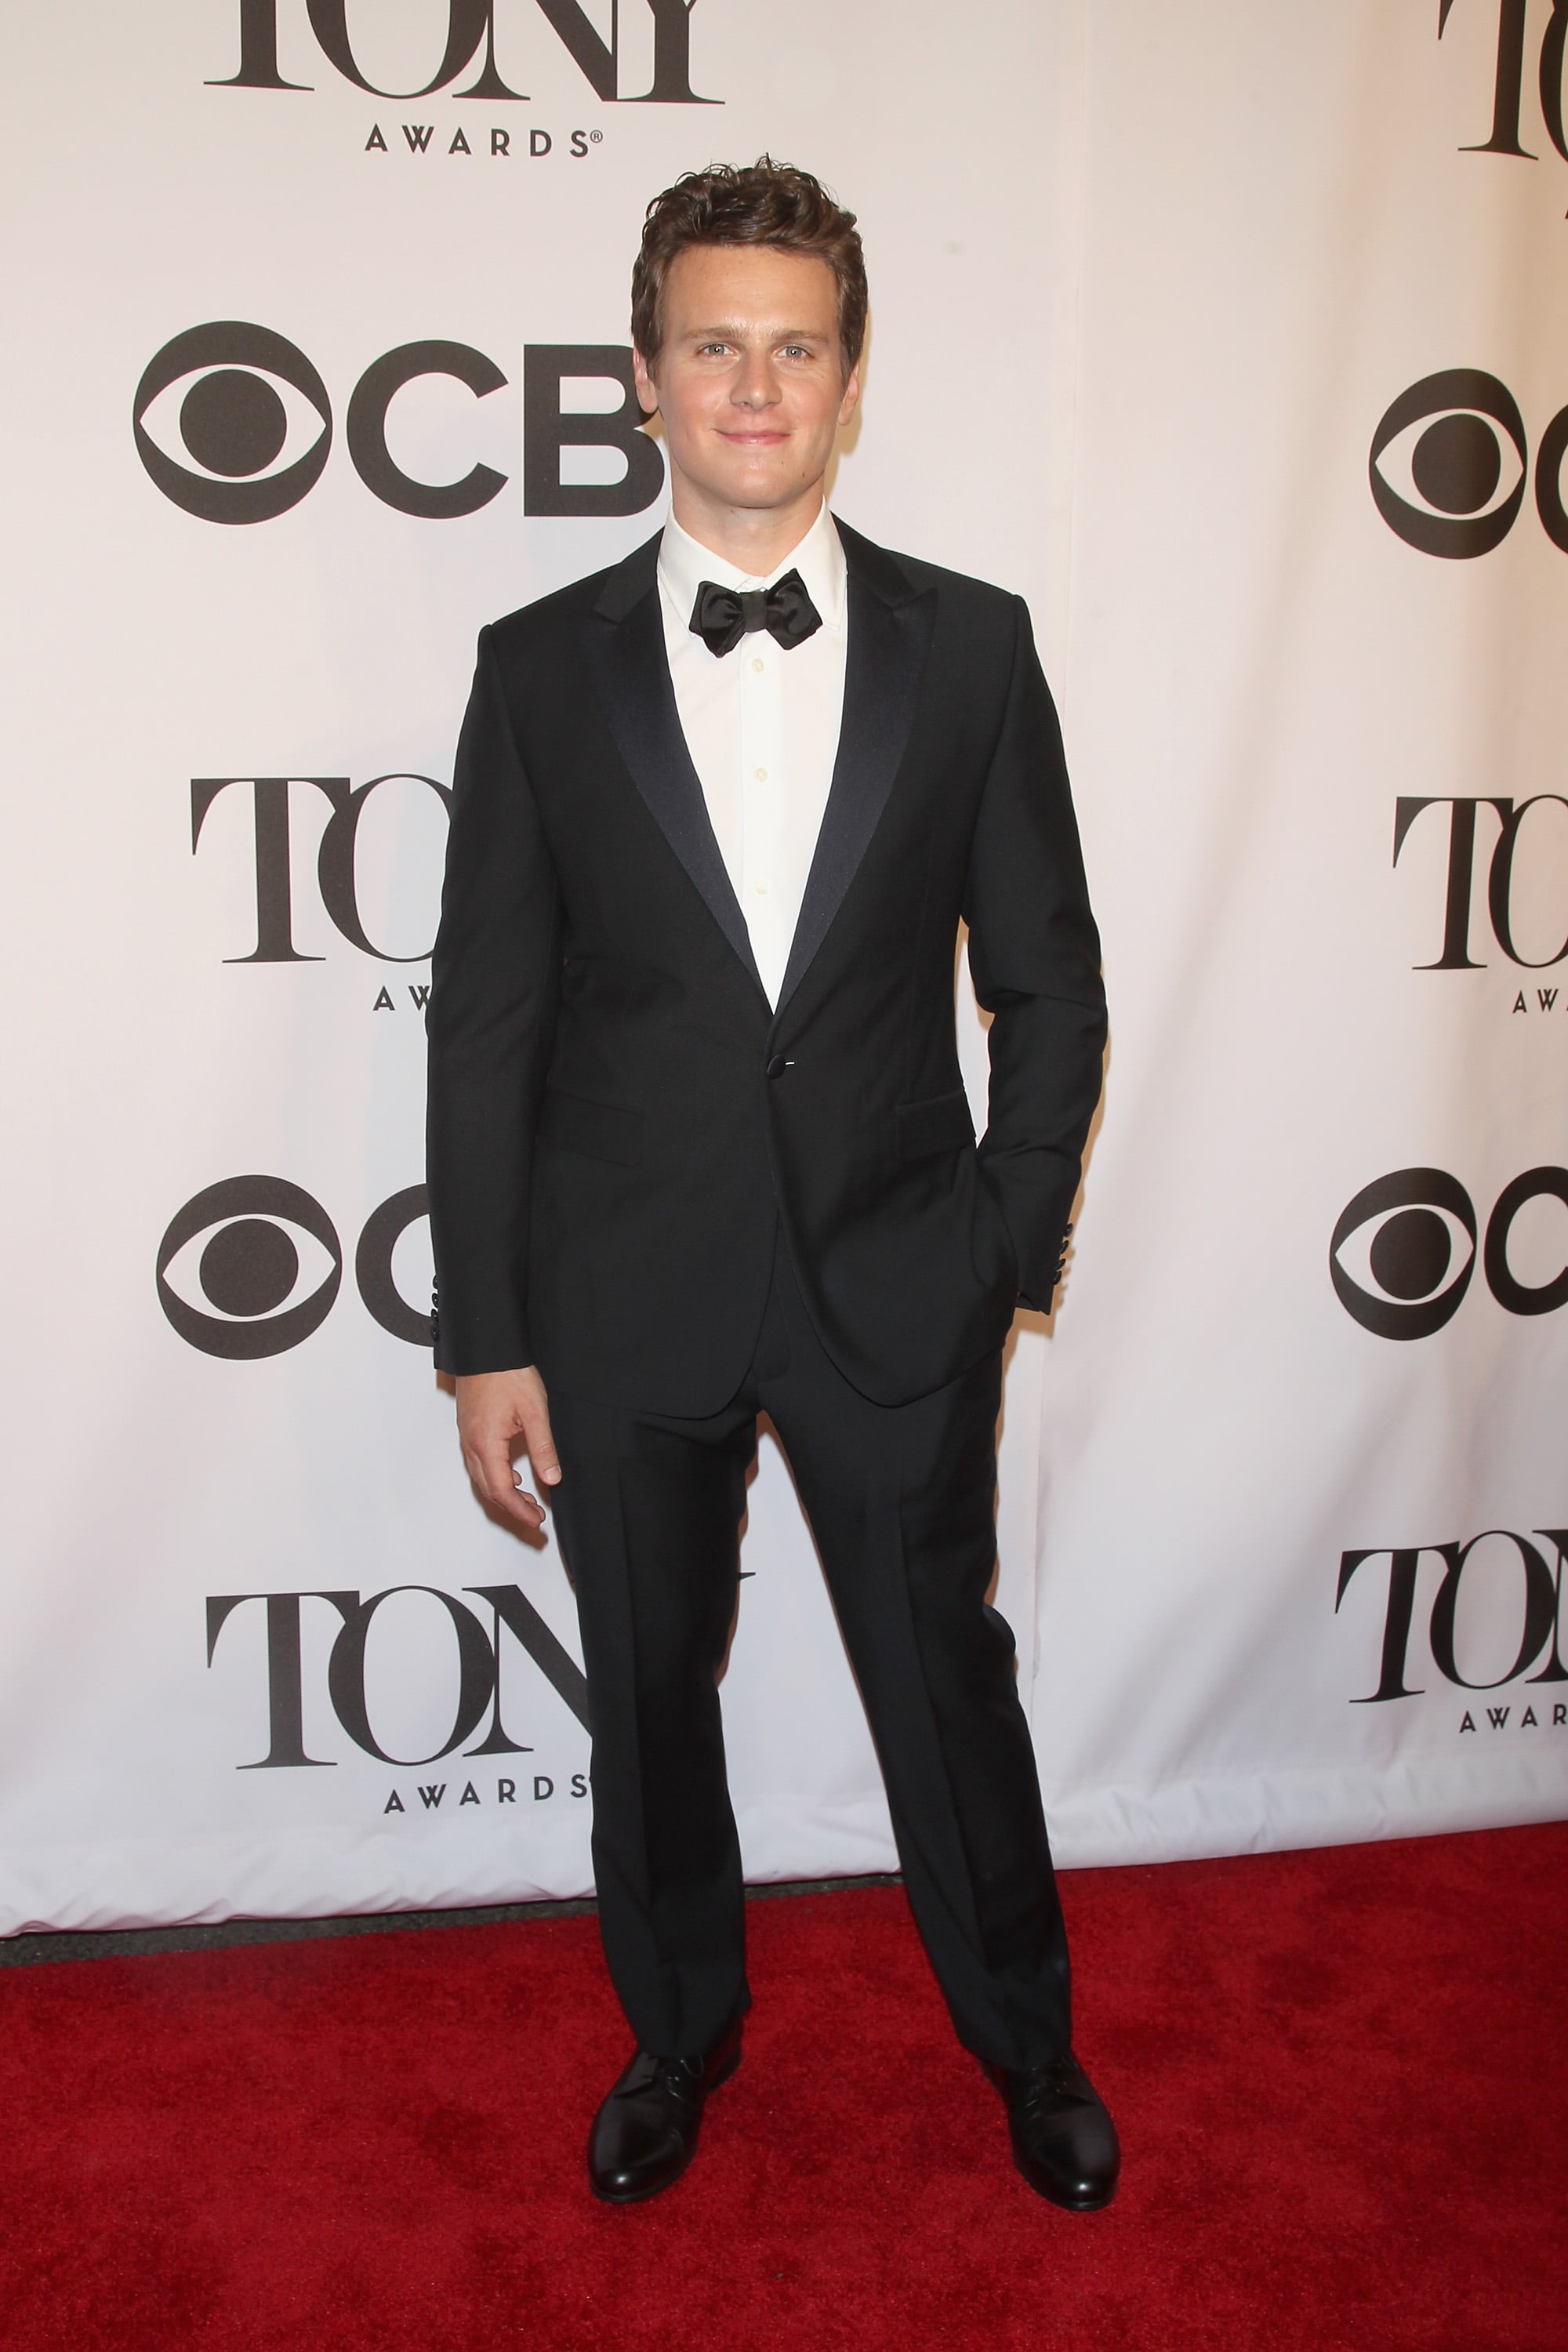 Jonathan Groff looked handsome in his tuxedo.